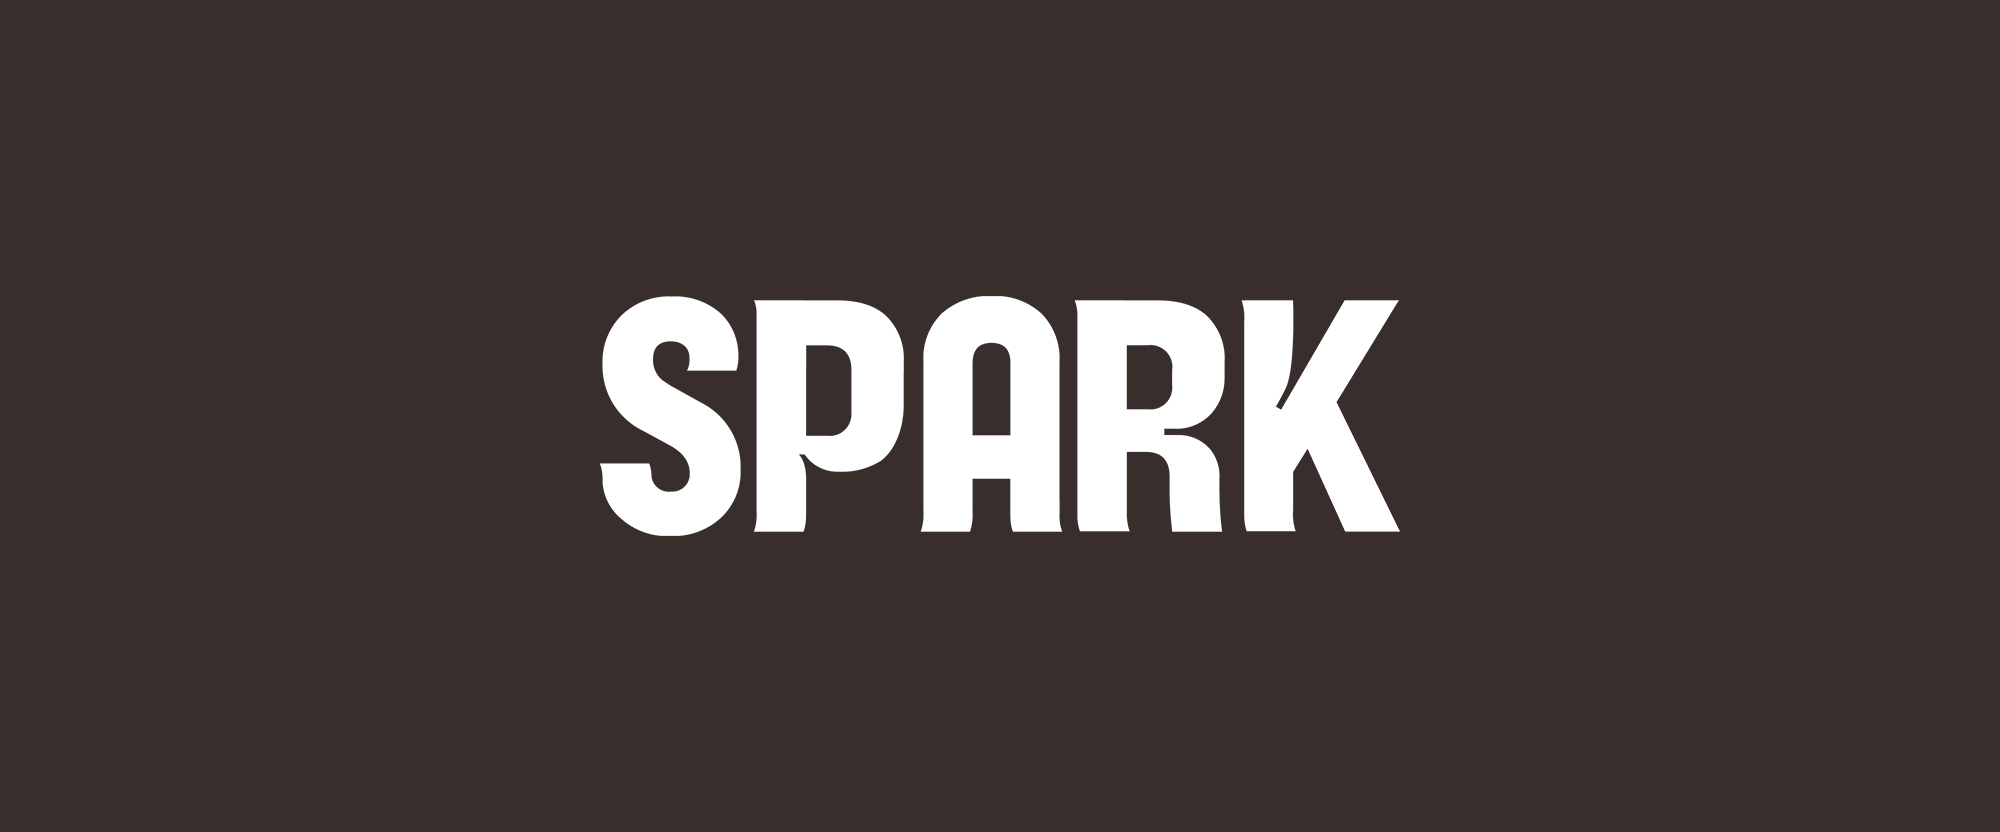 New Logo and Identity for Spark by Bullish